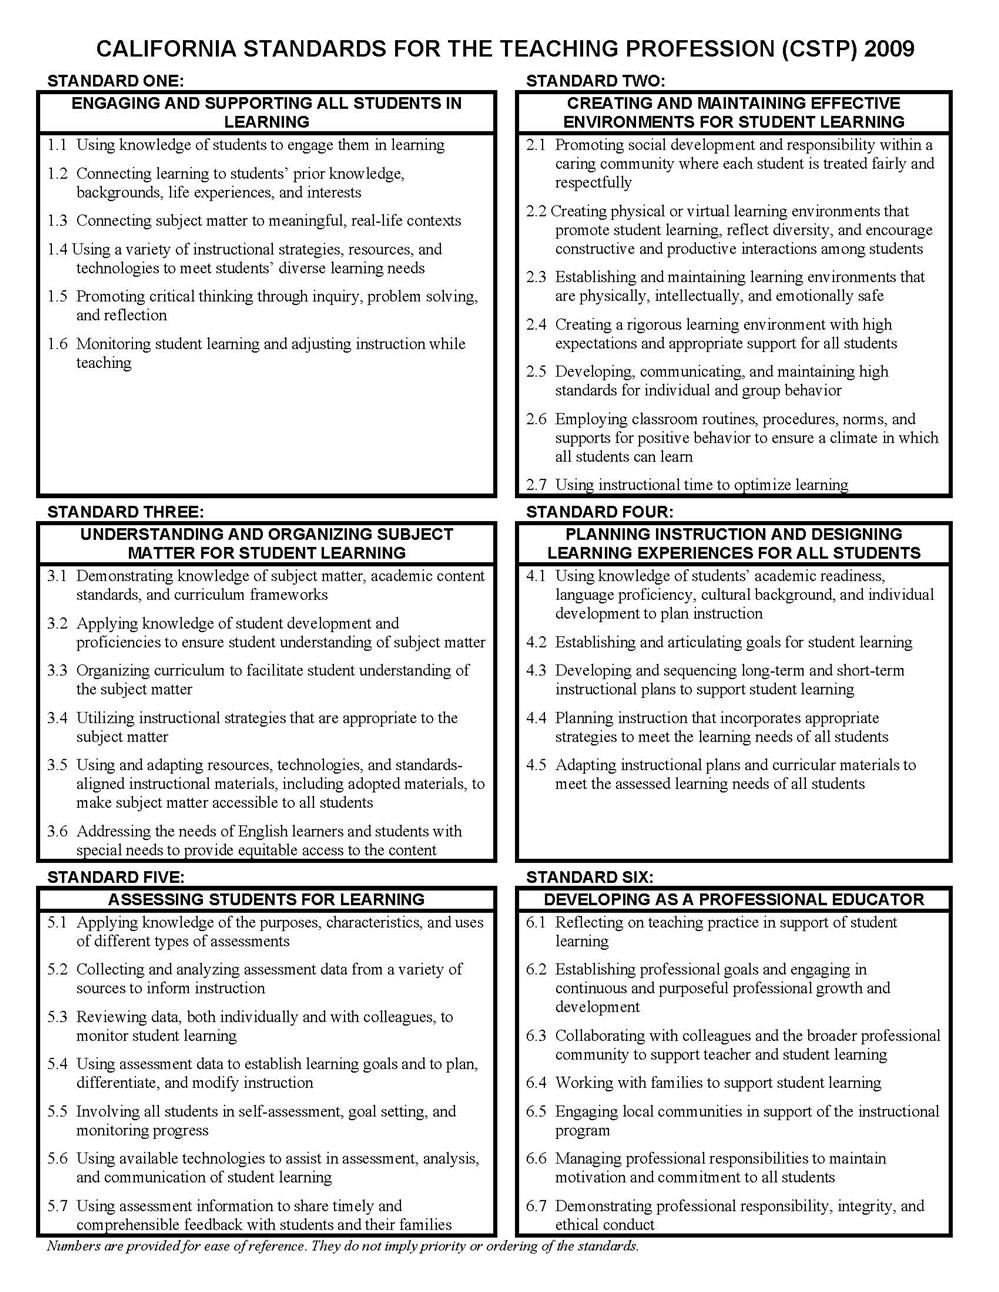 Image of the 2009 California Standards for the Teaching Profession Standards